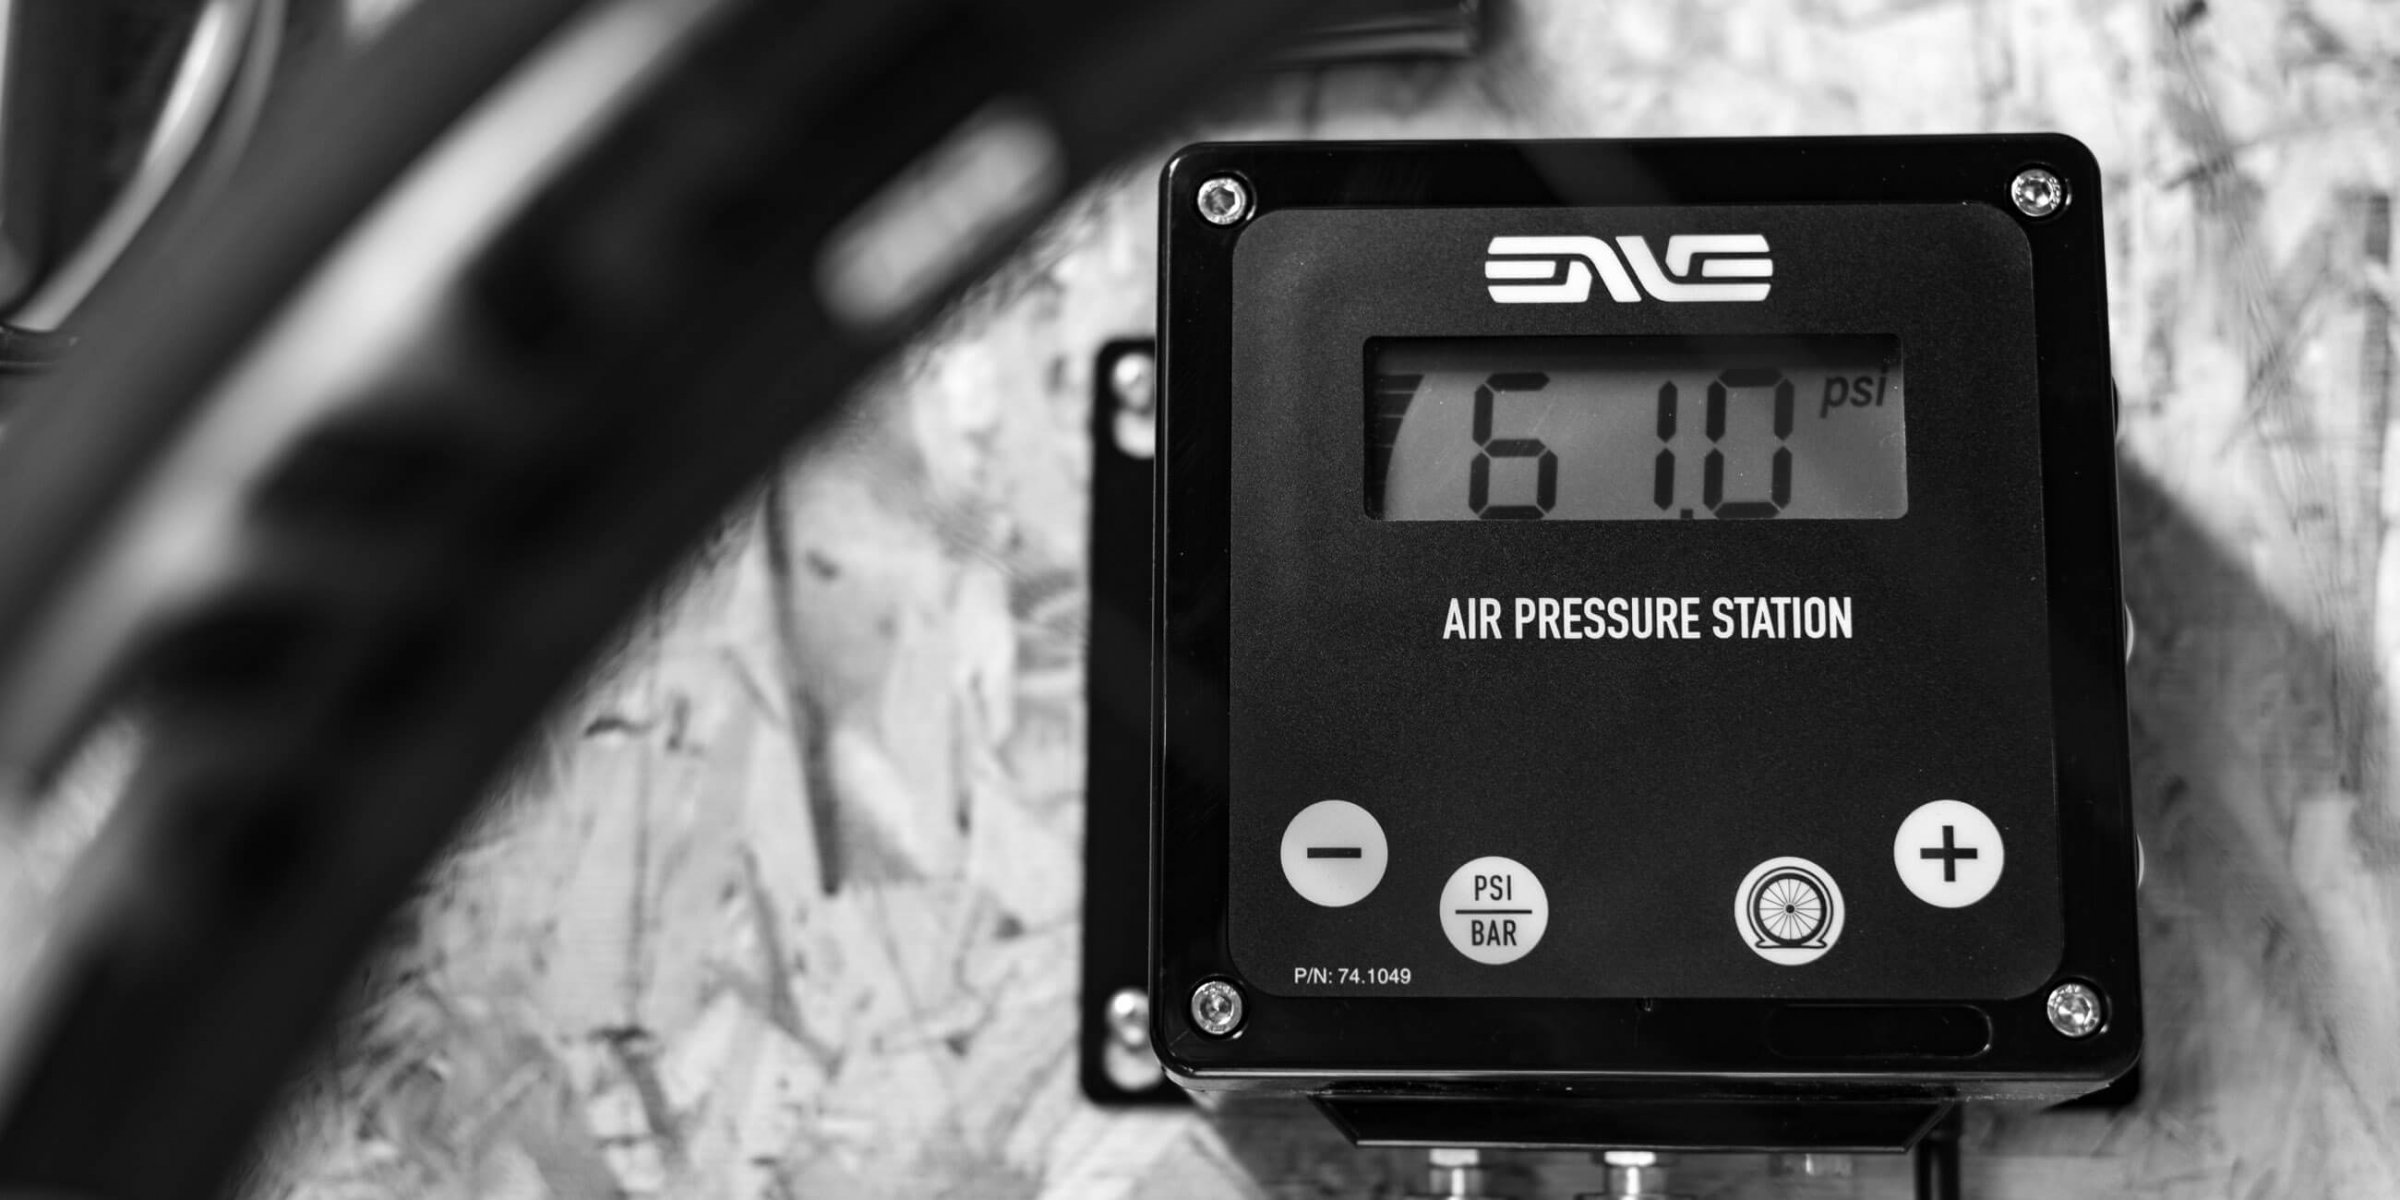 https://www.enve.com/en/products/air-pressure-station/?memberid=935758718&mailingid=117754750&utm_source=newsletter&utm_medium=email&utm_content=Air%20Pressure%20Station%20-%20Learn%20More%20%7C%20ENVE%20Worthy%20Inflation%2C%20Inflate%20Accurately.&utm_campaign=Air%20Pressure%20Station%20Launch%2C%20Product